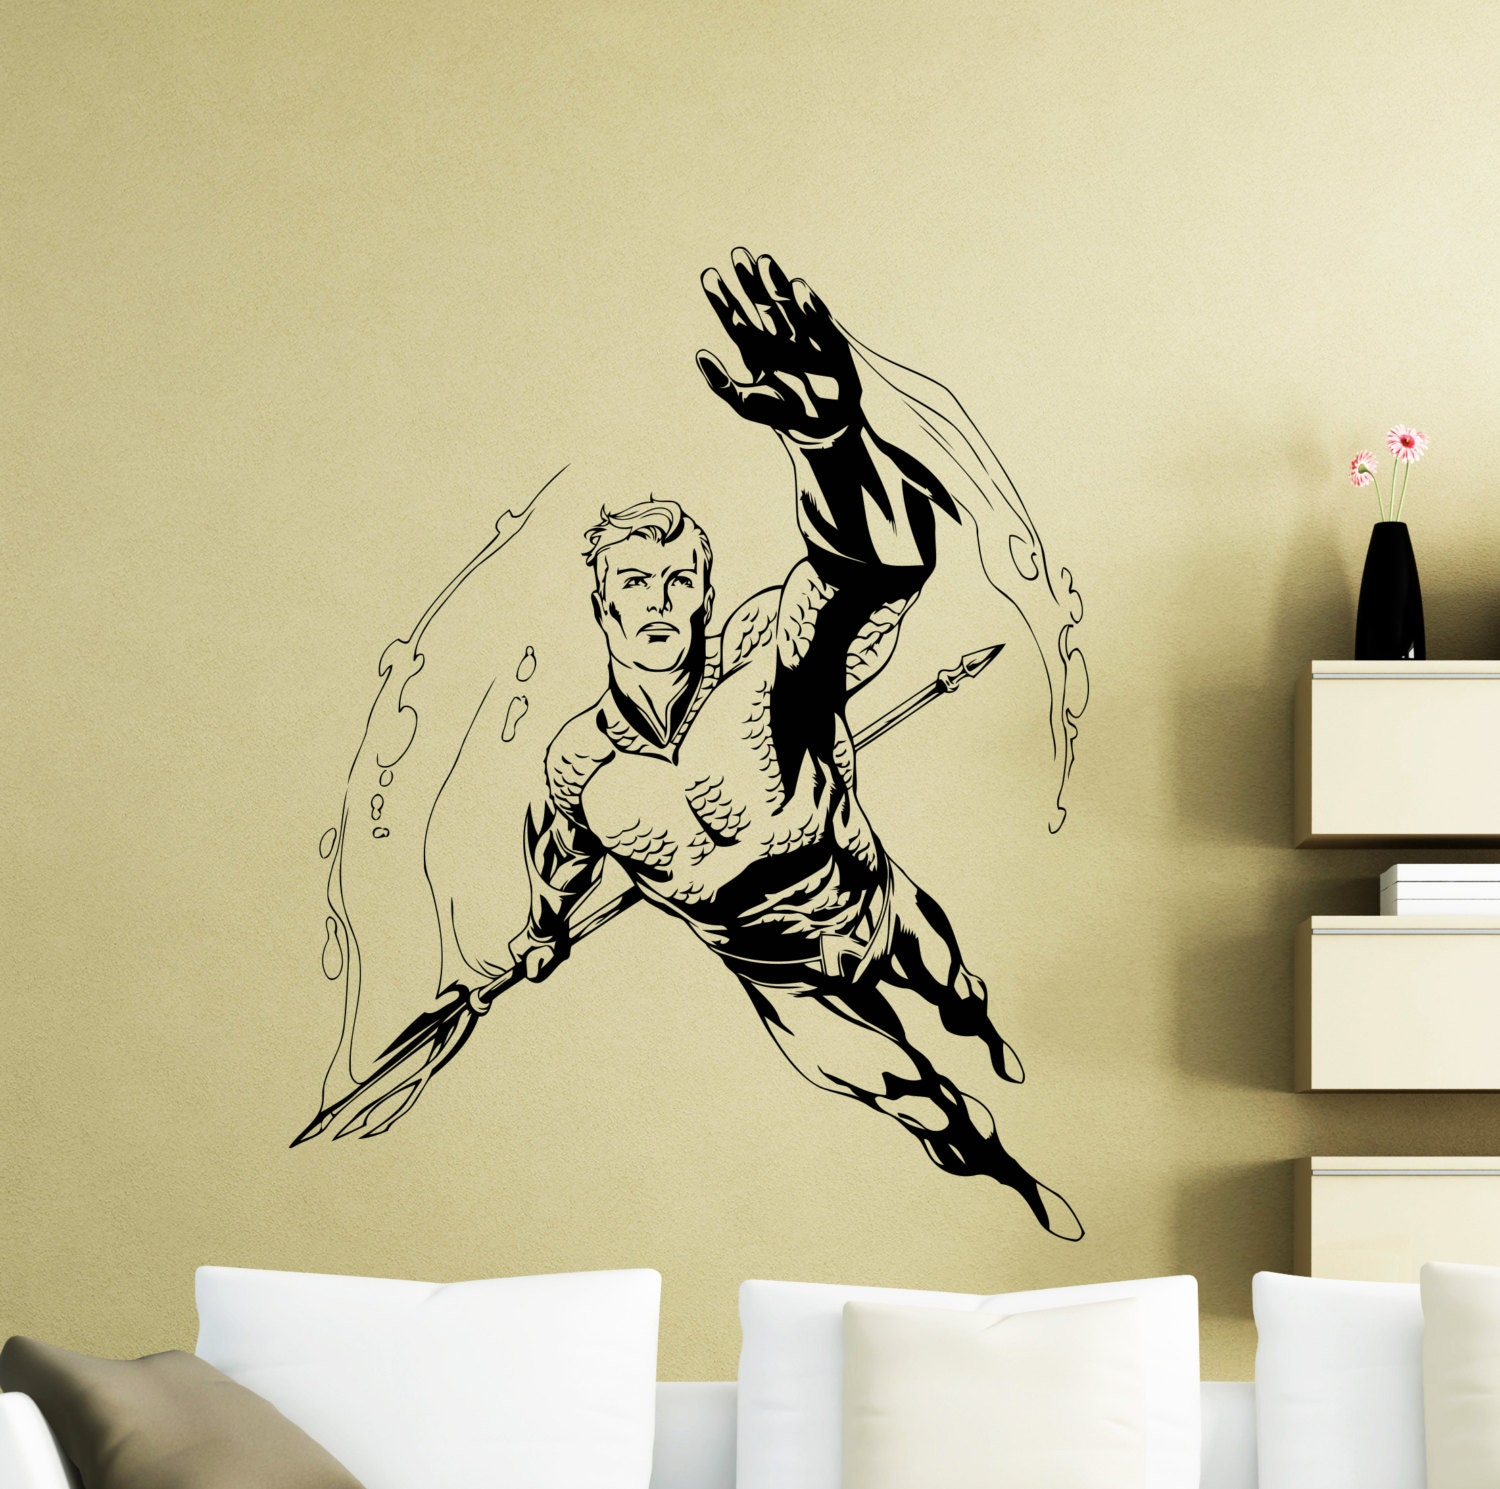 Aquaman Wall Decal DC Comics Superhero Bathroom Vinyl Sticker | Etsy